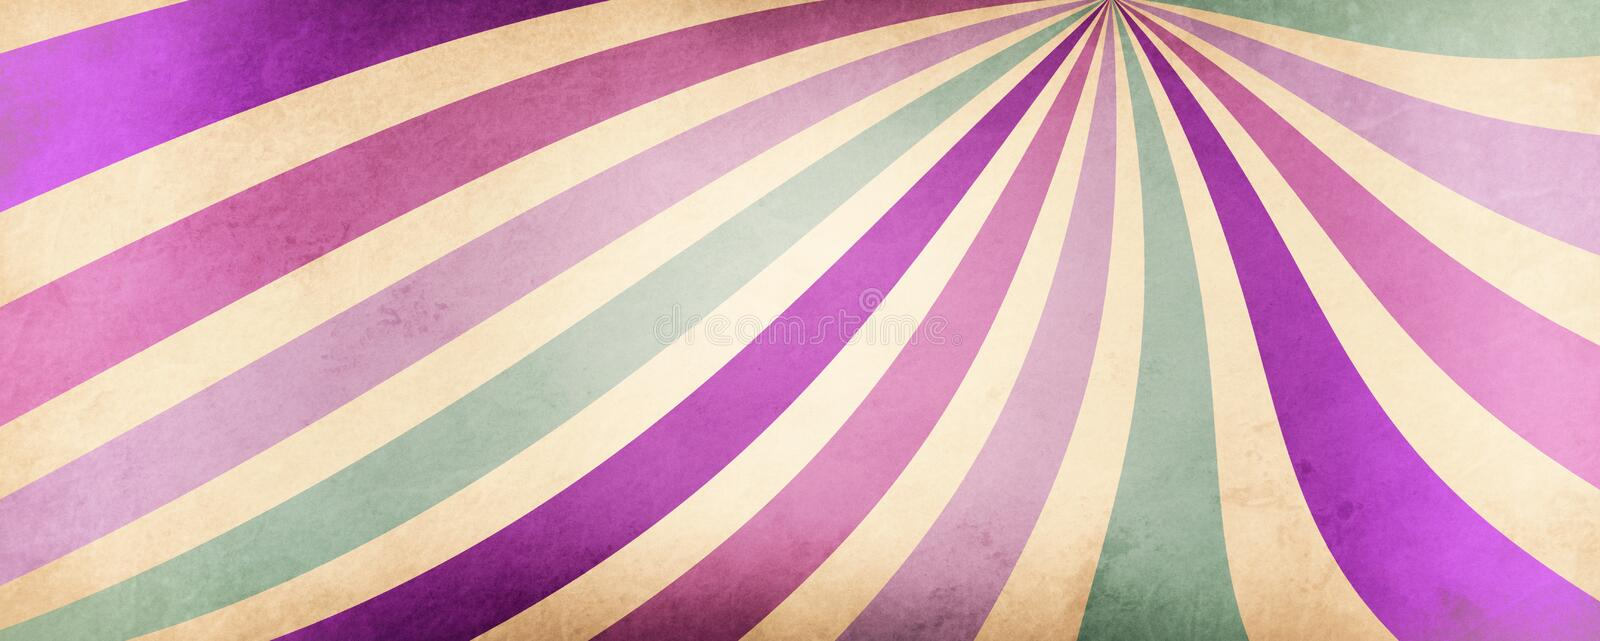 Abstract striped background with wavy lines of purple pink violet and blue green colors on an old white or beige background vector illustration